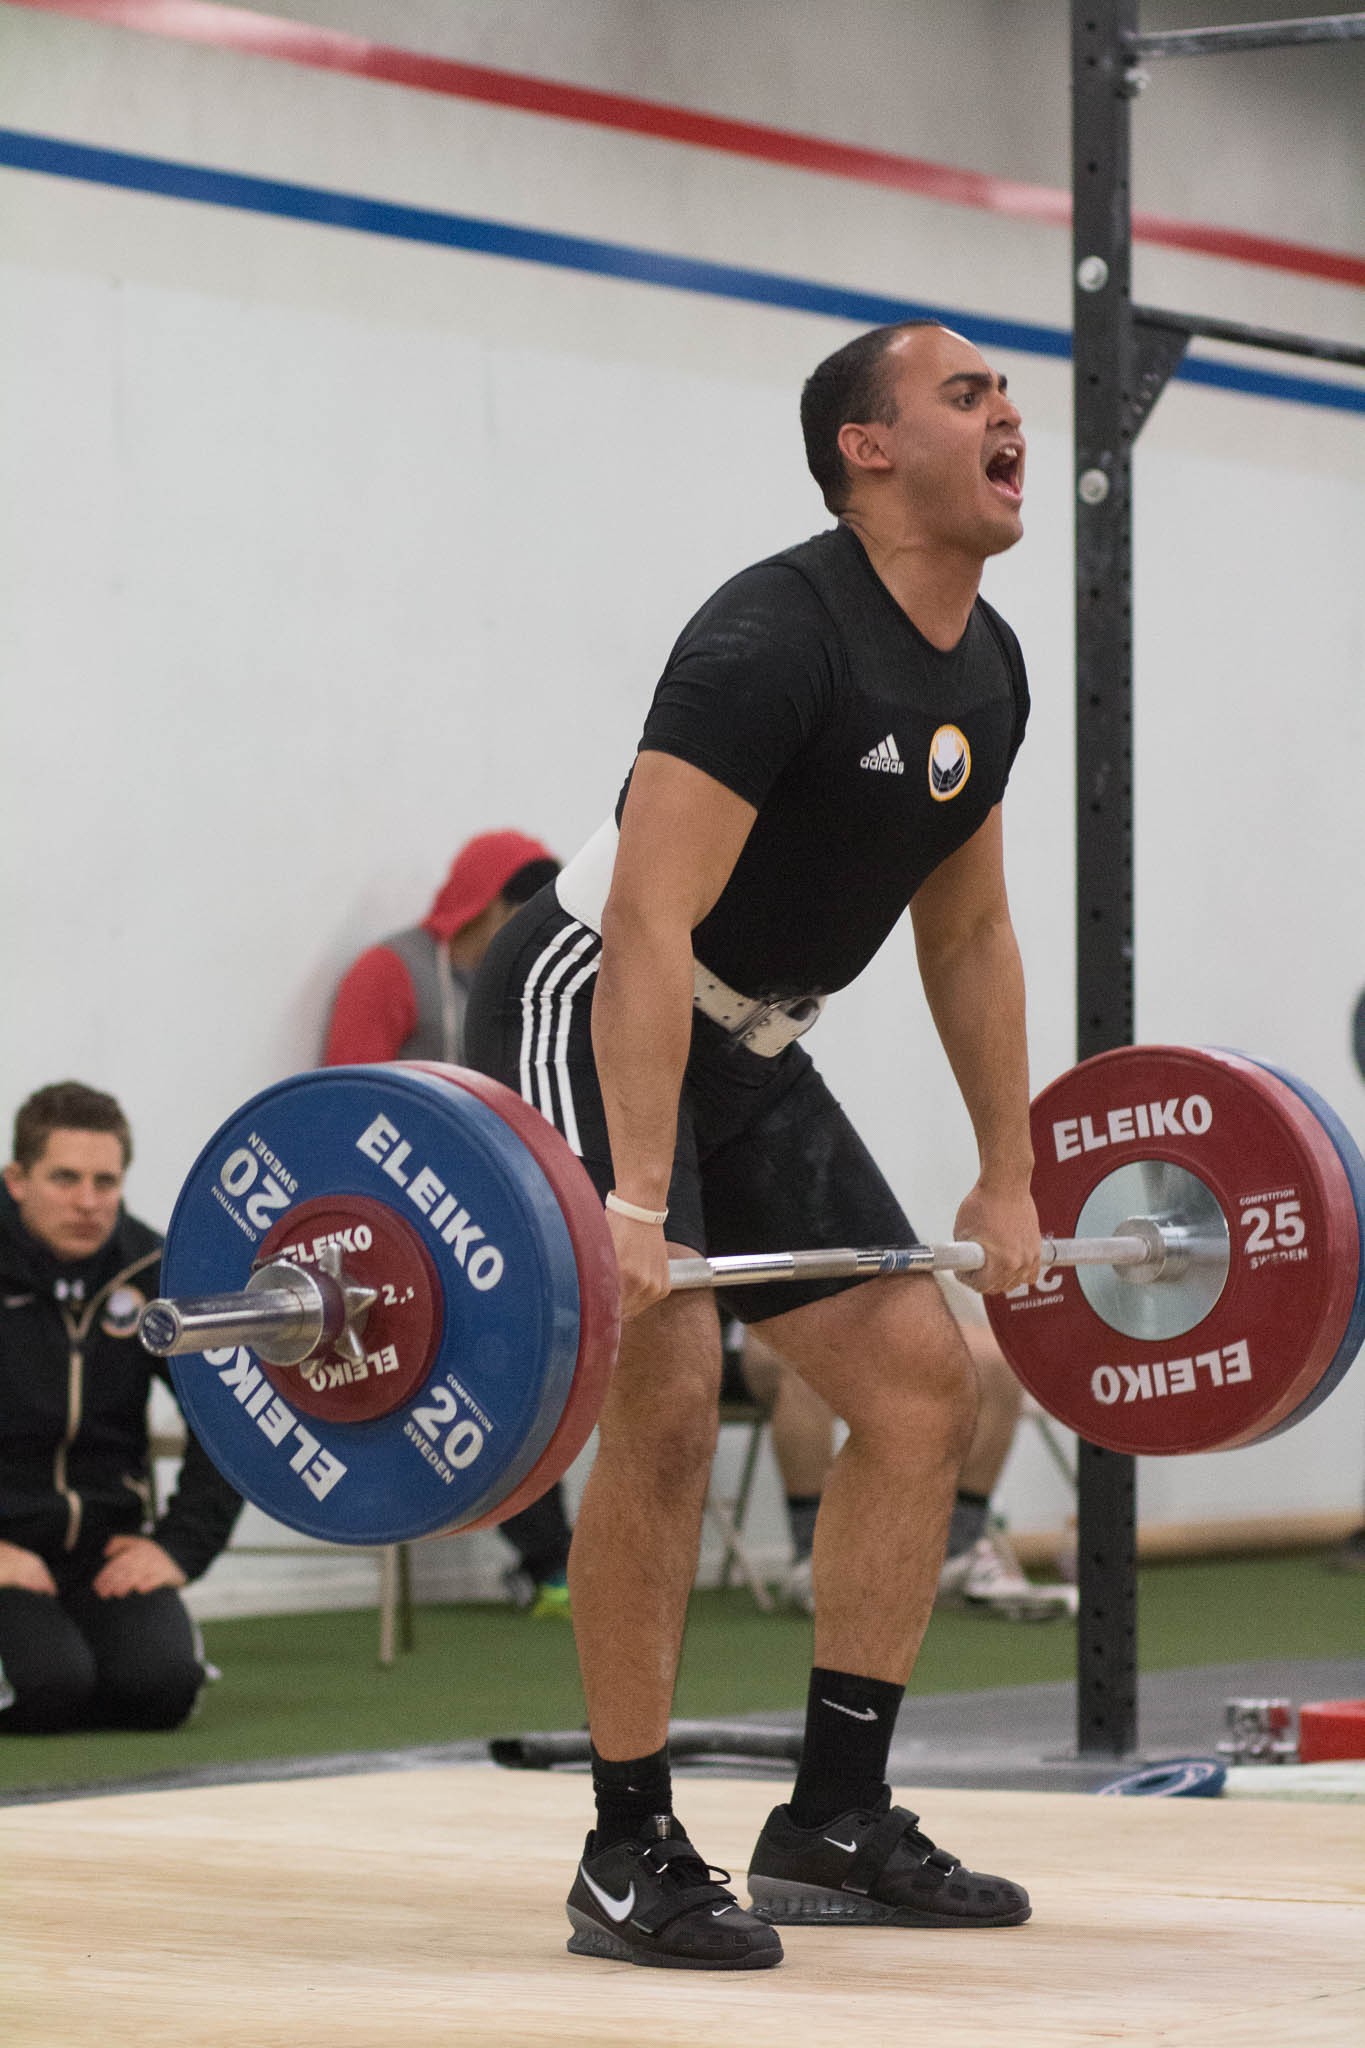 I'd like to highlight the coach in the background.  His face is just as intense as the lifter on the platform.